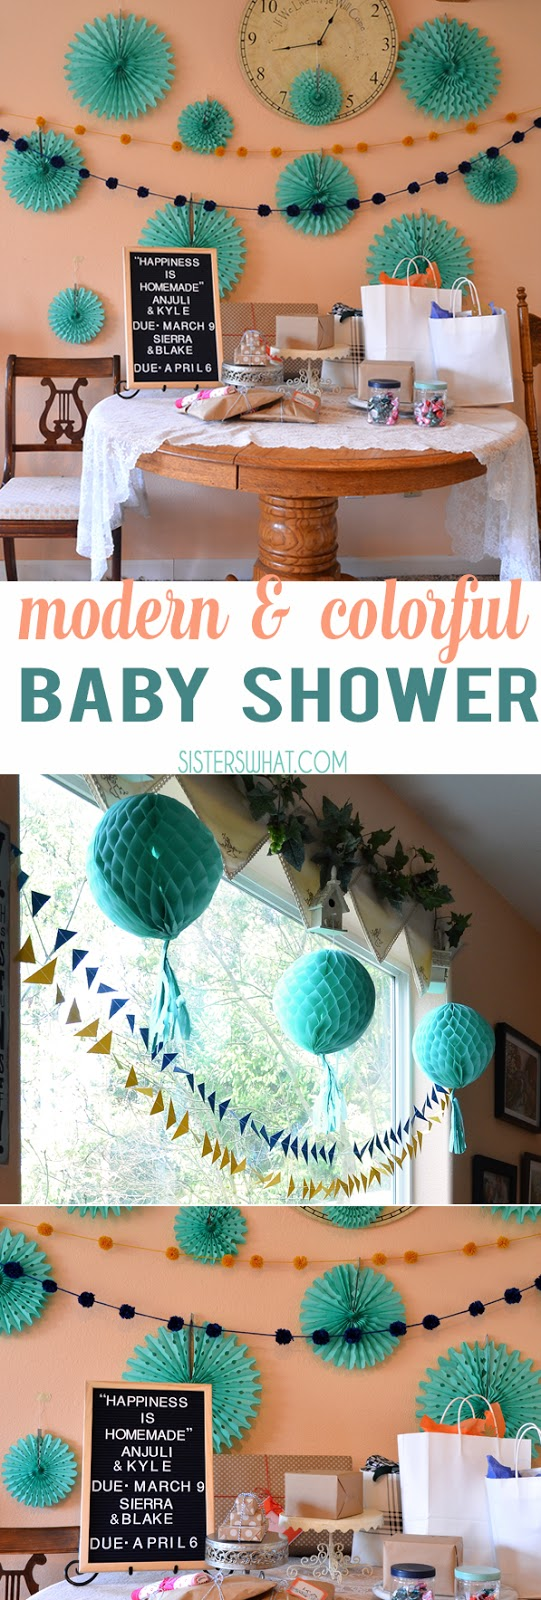 a colorful baby shower decorations using tissue paper fans and pom pom garlands perfect for a modern baby shower